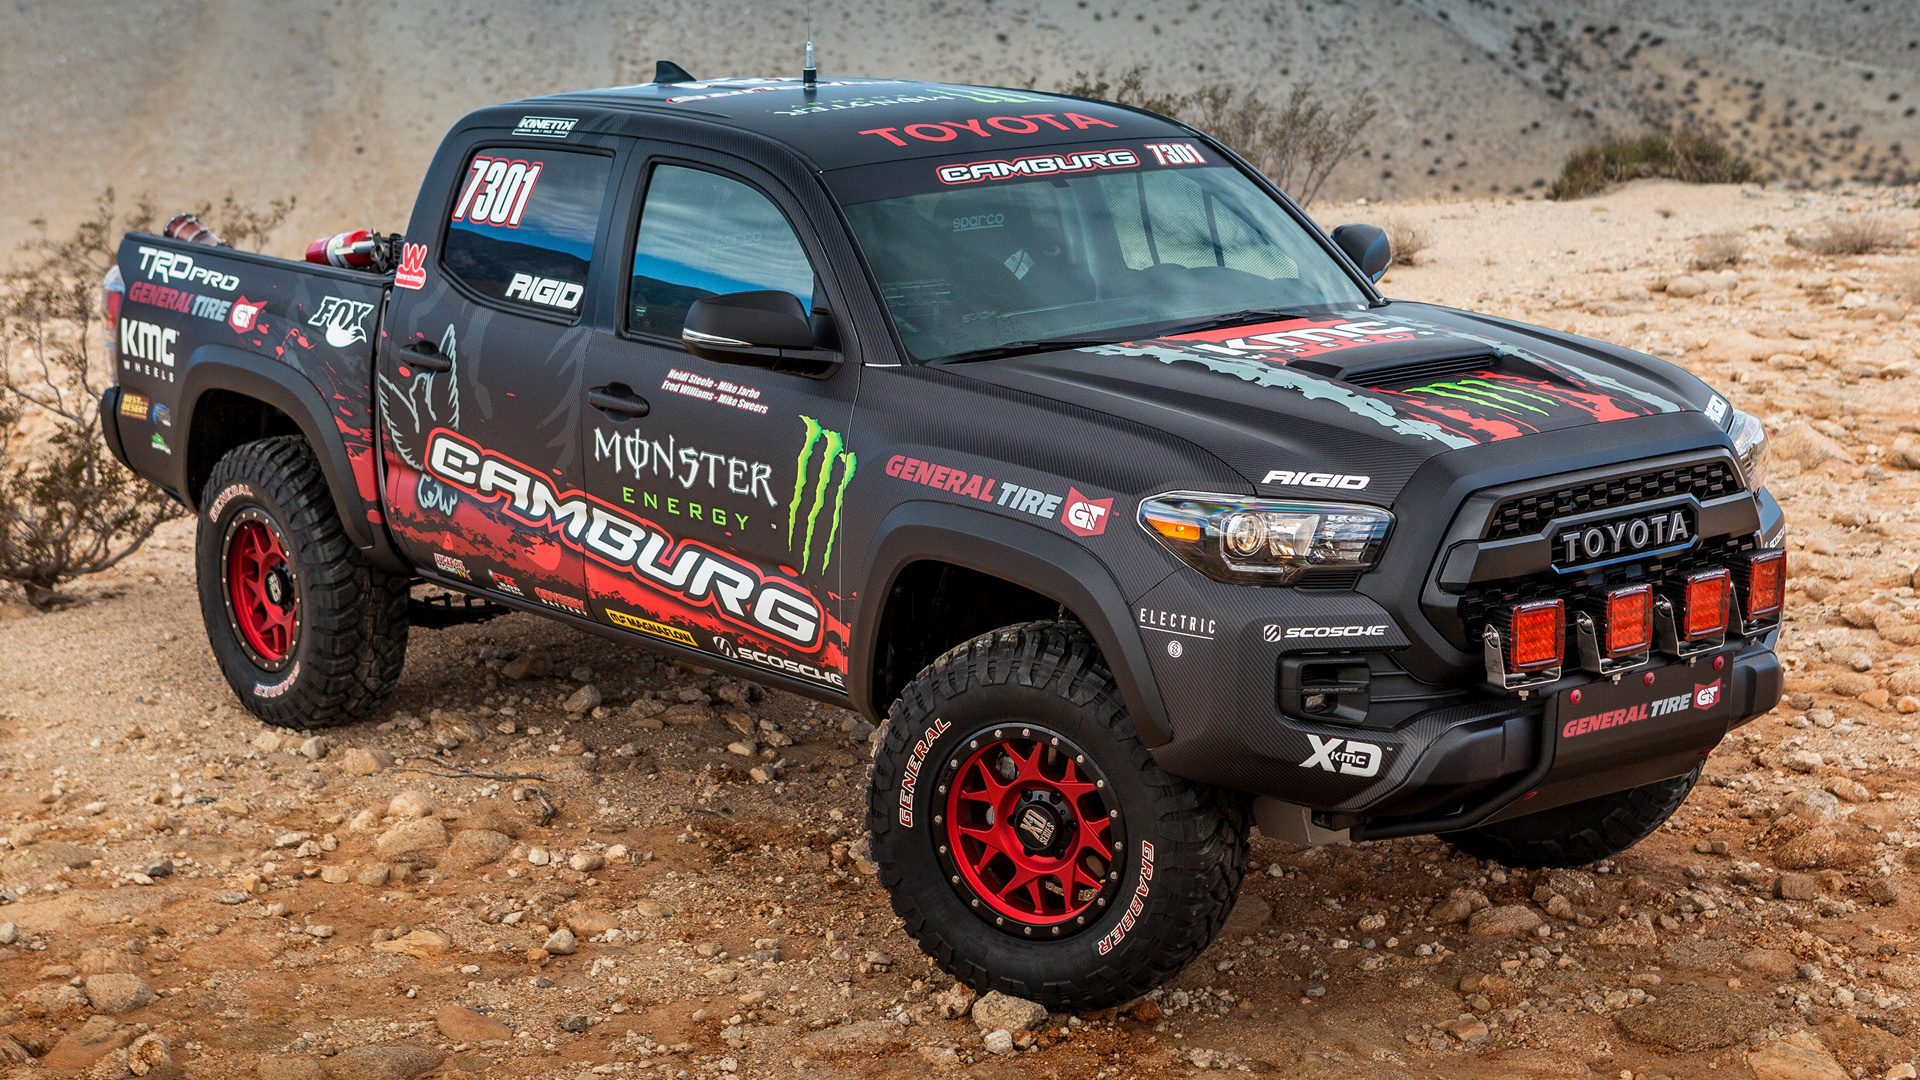 2016 Toyota Tacoma Trd Sport >> Toyota Tacoma TRD Pro Race Truck (2016) Wallpapers and HD Images - Car Pixel